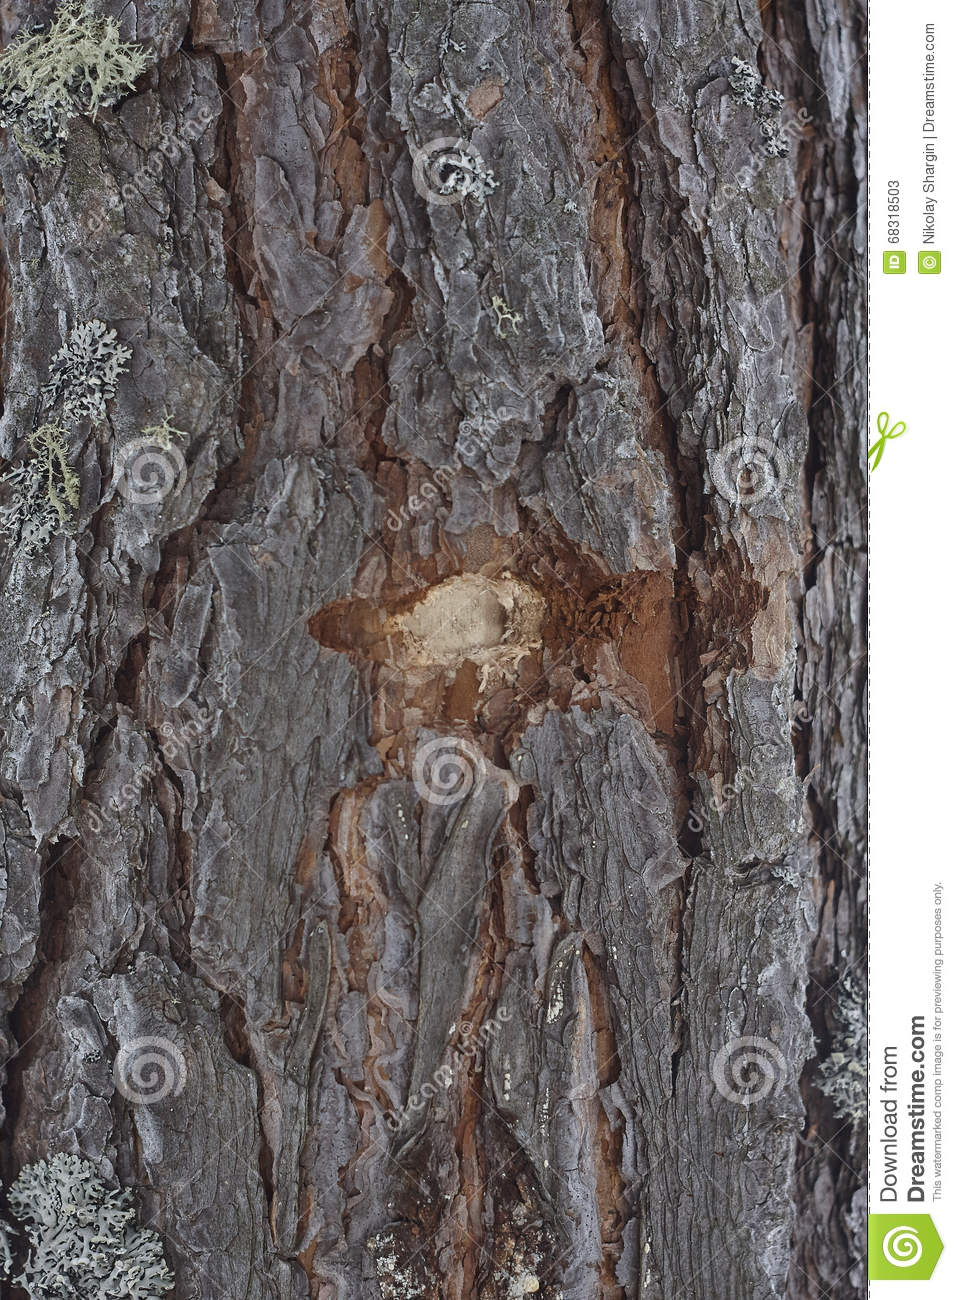 Bullet hole in tree bark wood lumber moss close up brown pine tree